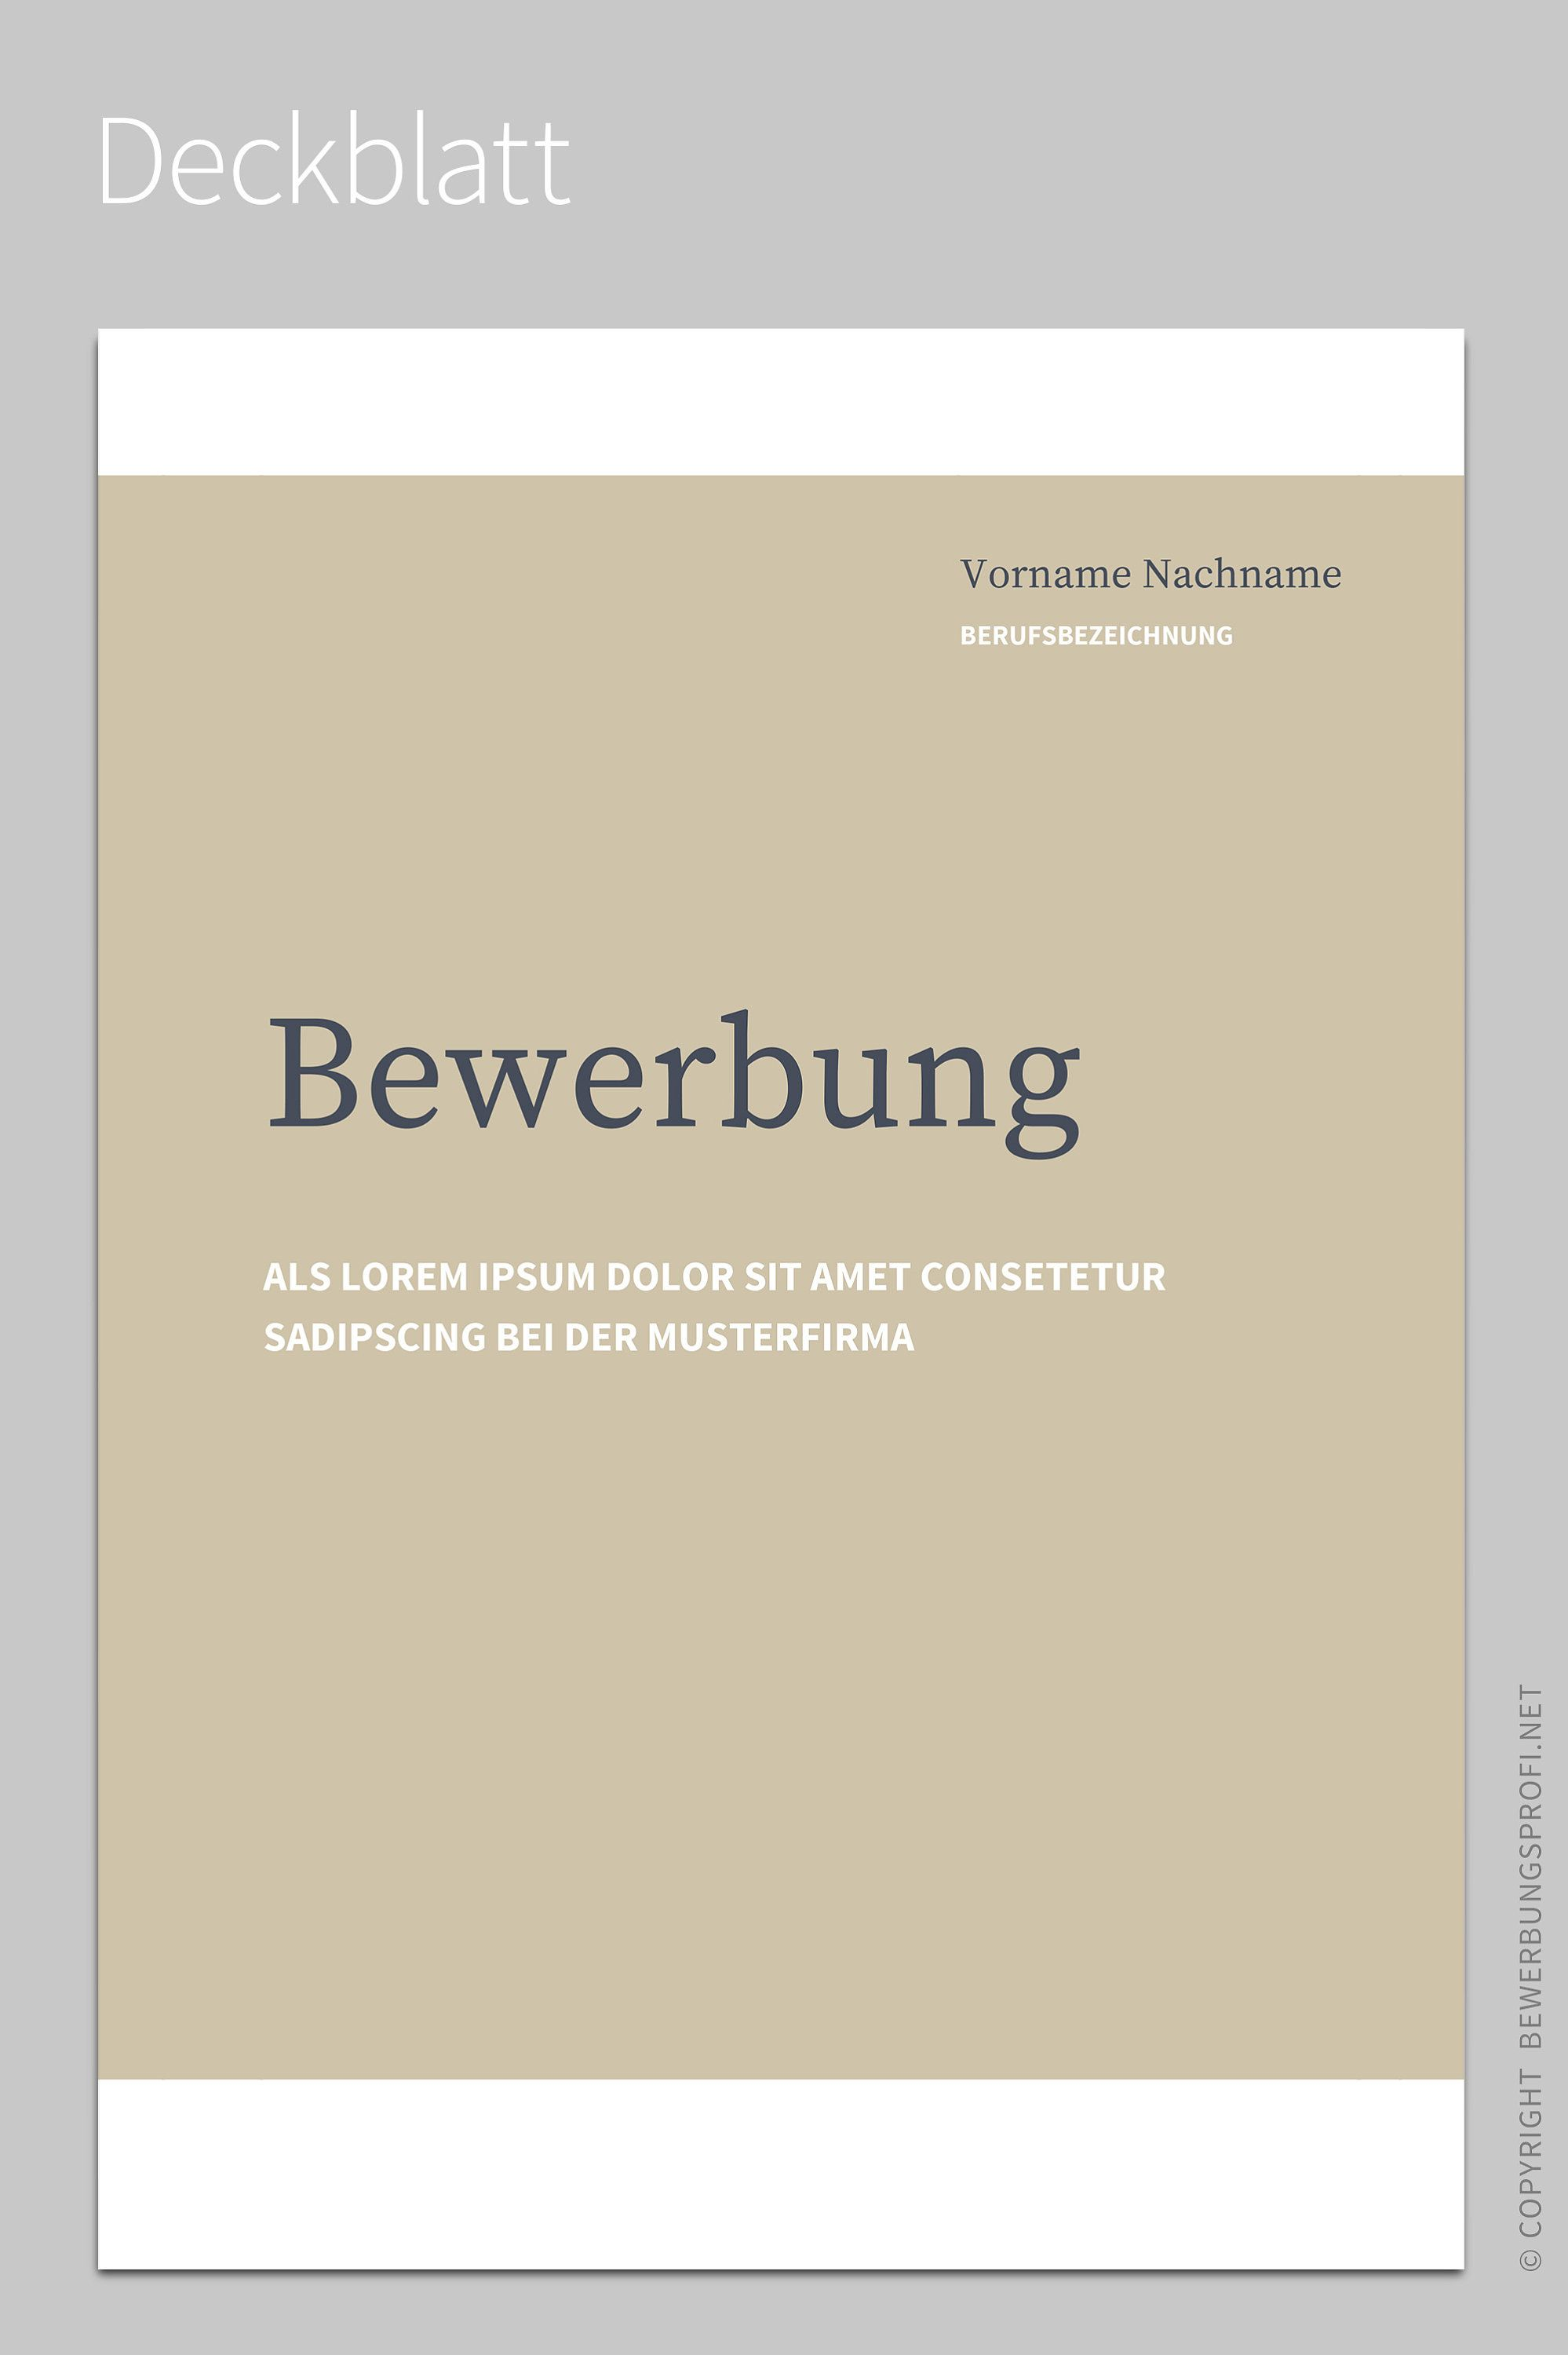 Application Templates German Curriculum Vitae Template Ebook With Videos Microsoft Word Apple Pages Openoffice And Libreoffice Napea Sand Lebenslauf Bewerbung Muster Bewerbung